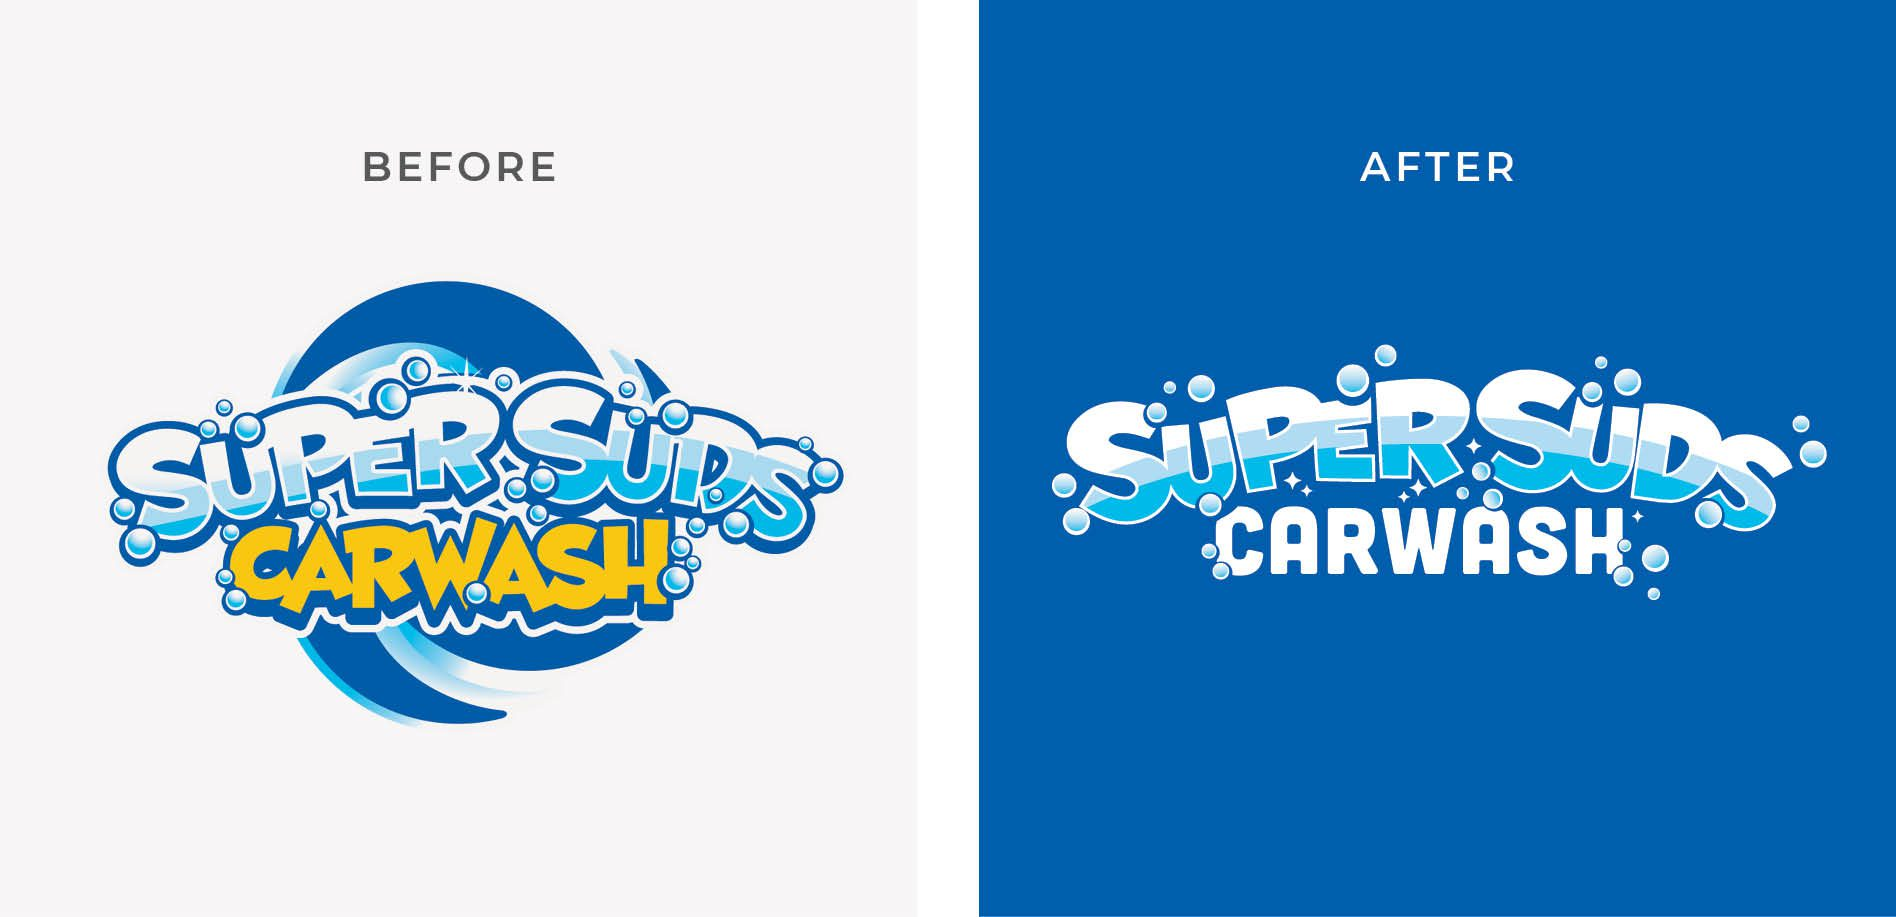 logo design carwash company